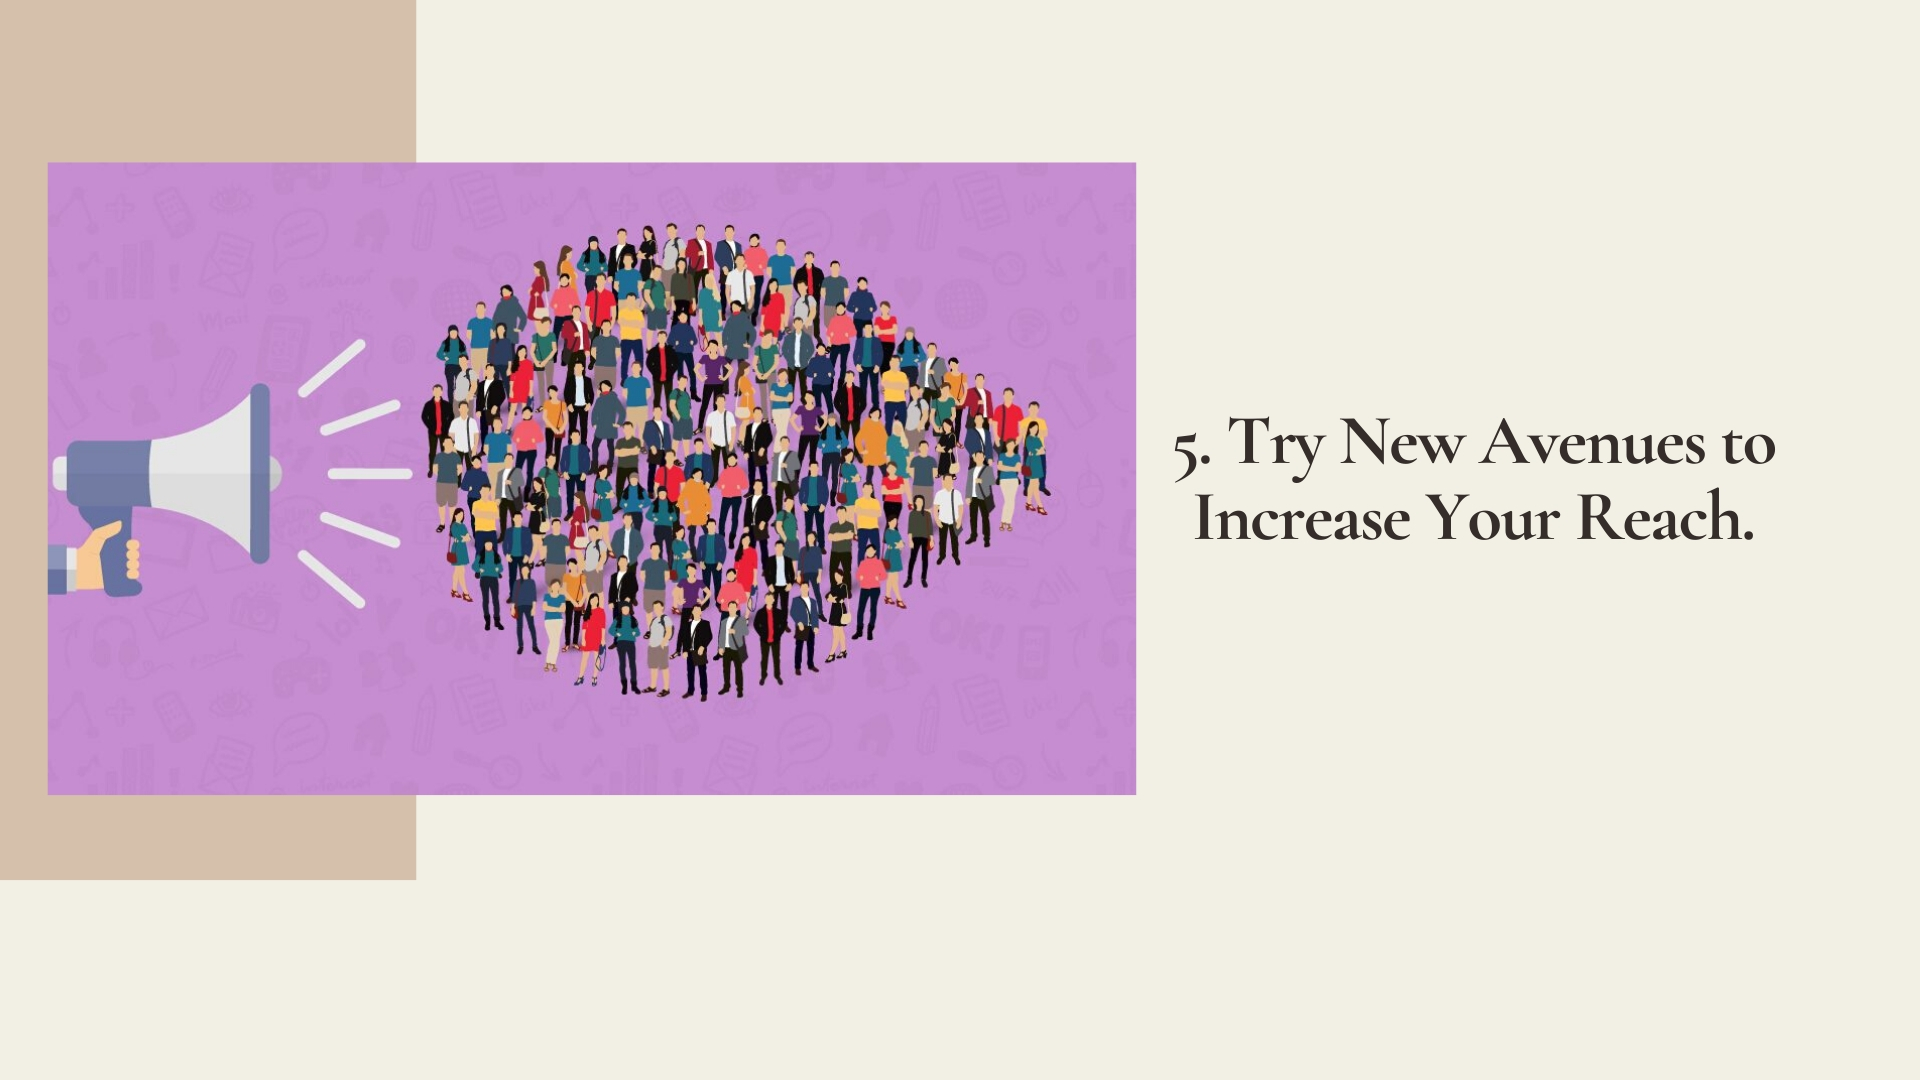 5. Try New Avenues to Increase Your Reach.